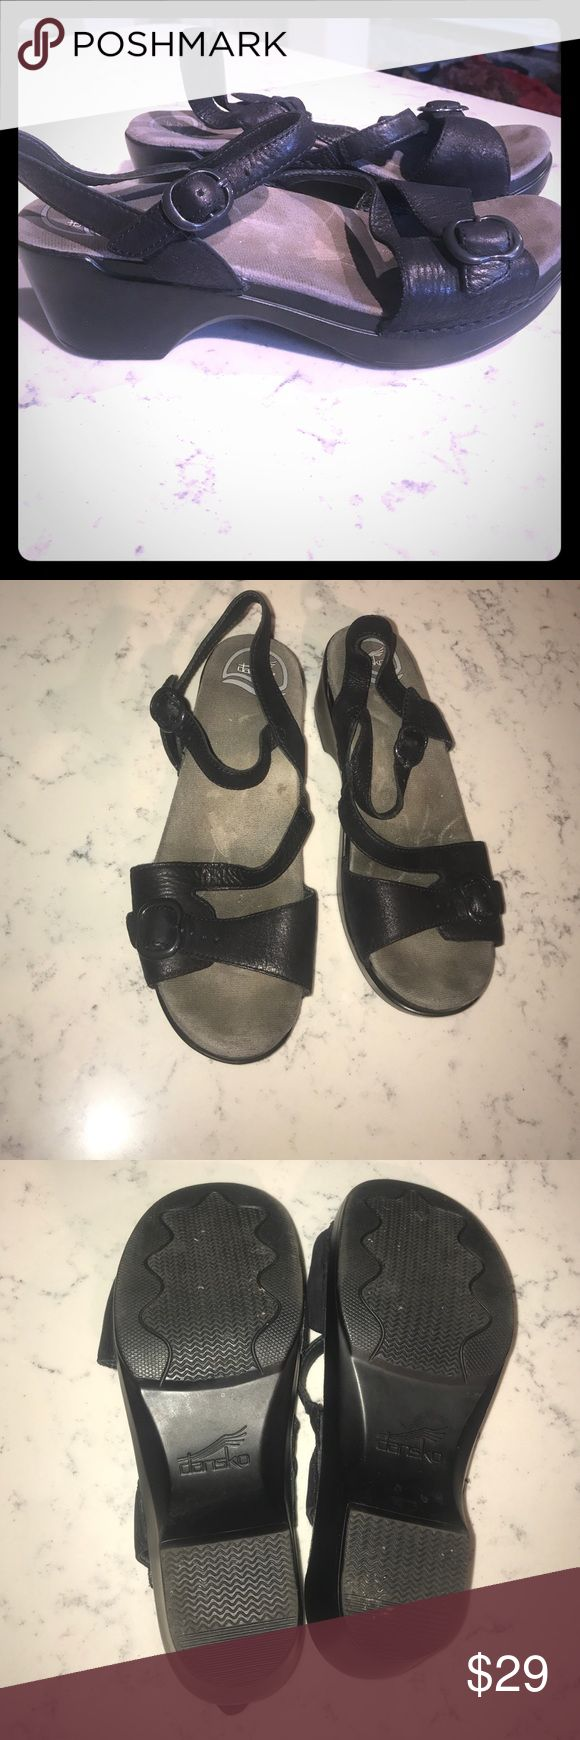 Dankso Mary Jane Clog Sandal Size 39 Open Toe Dansko black Mary Jane Sandals size 39 for sale! Leather and comfortable! The bottom soles are in excellent condition. They have been worn but have a ton of wear left! Dansko Shoes Sandals